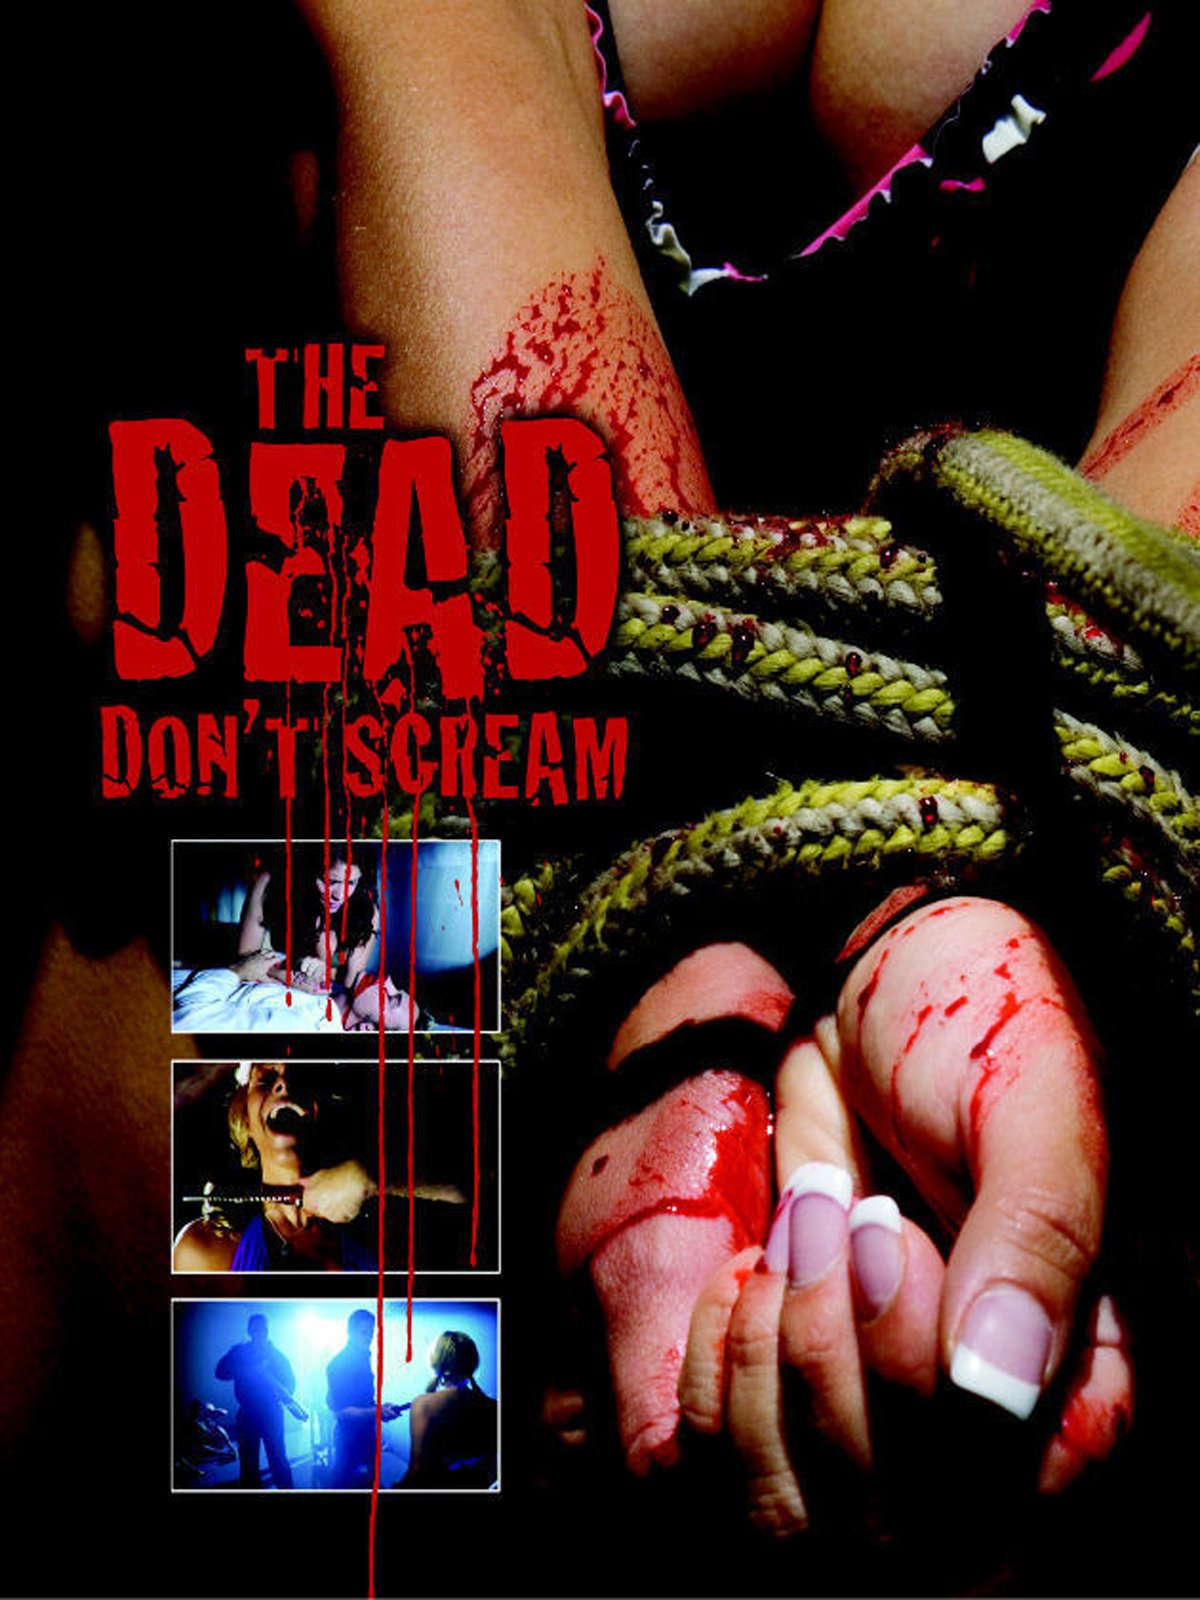 The Dead Don't Scream